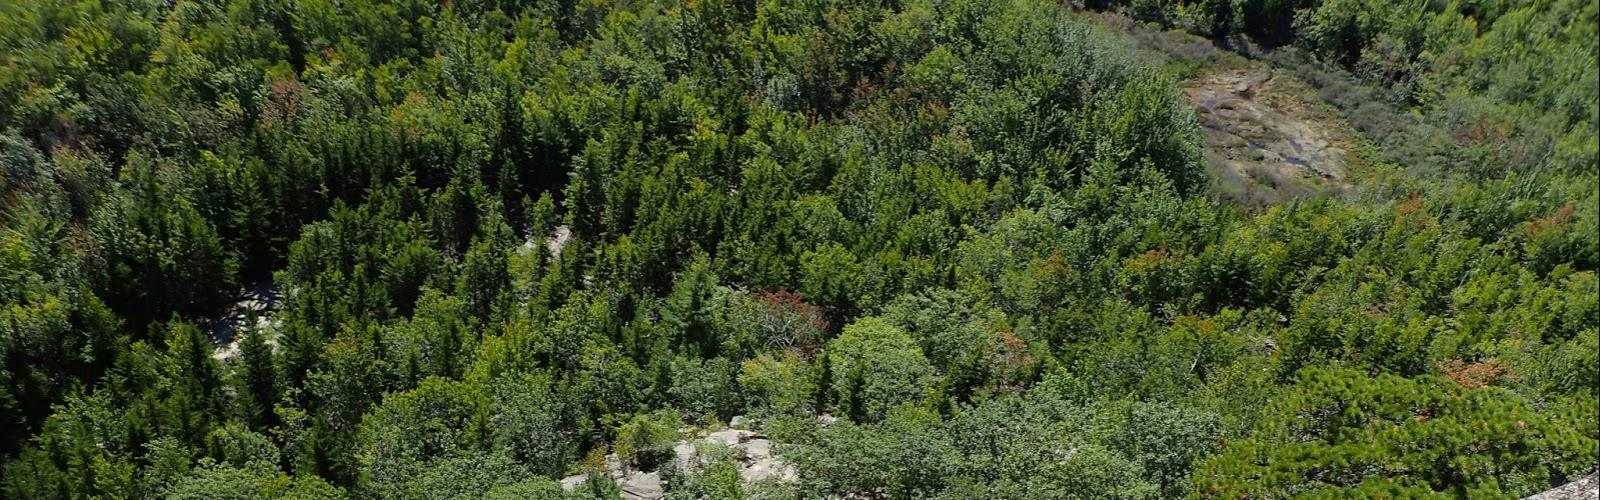 The Beehive, Maine - Hiking  tree outdoor forest plant nature landscape conifer wooded spruce evergreen balsam fir wood lush area hillside surrounded